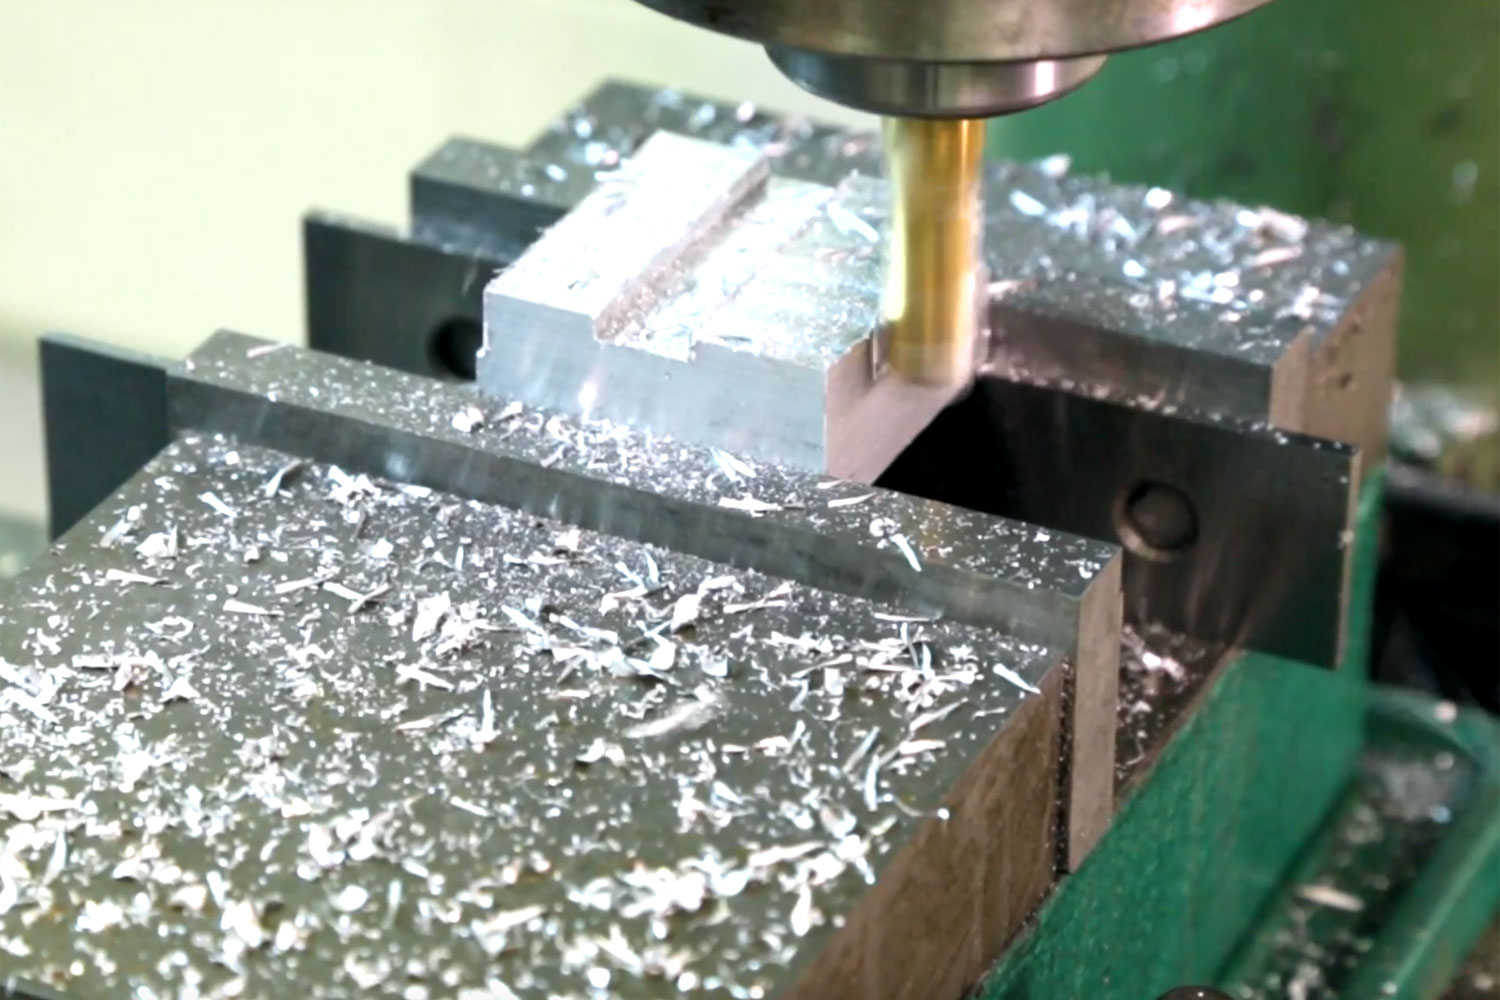 manual milling services by C&M Mould Tools in Dorset uk